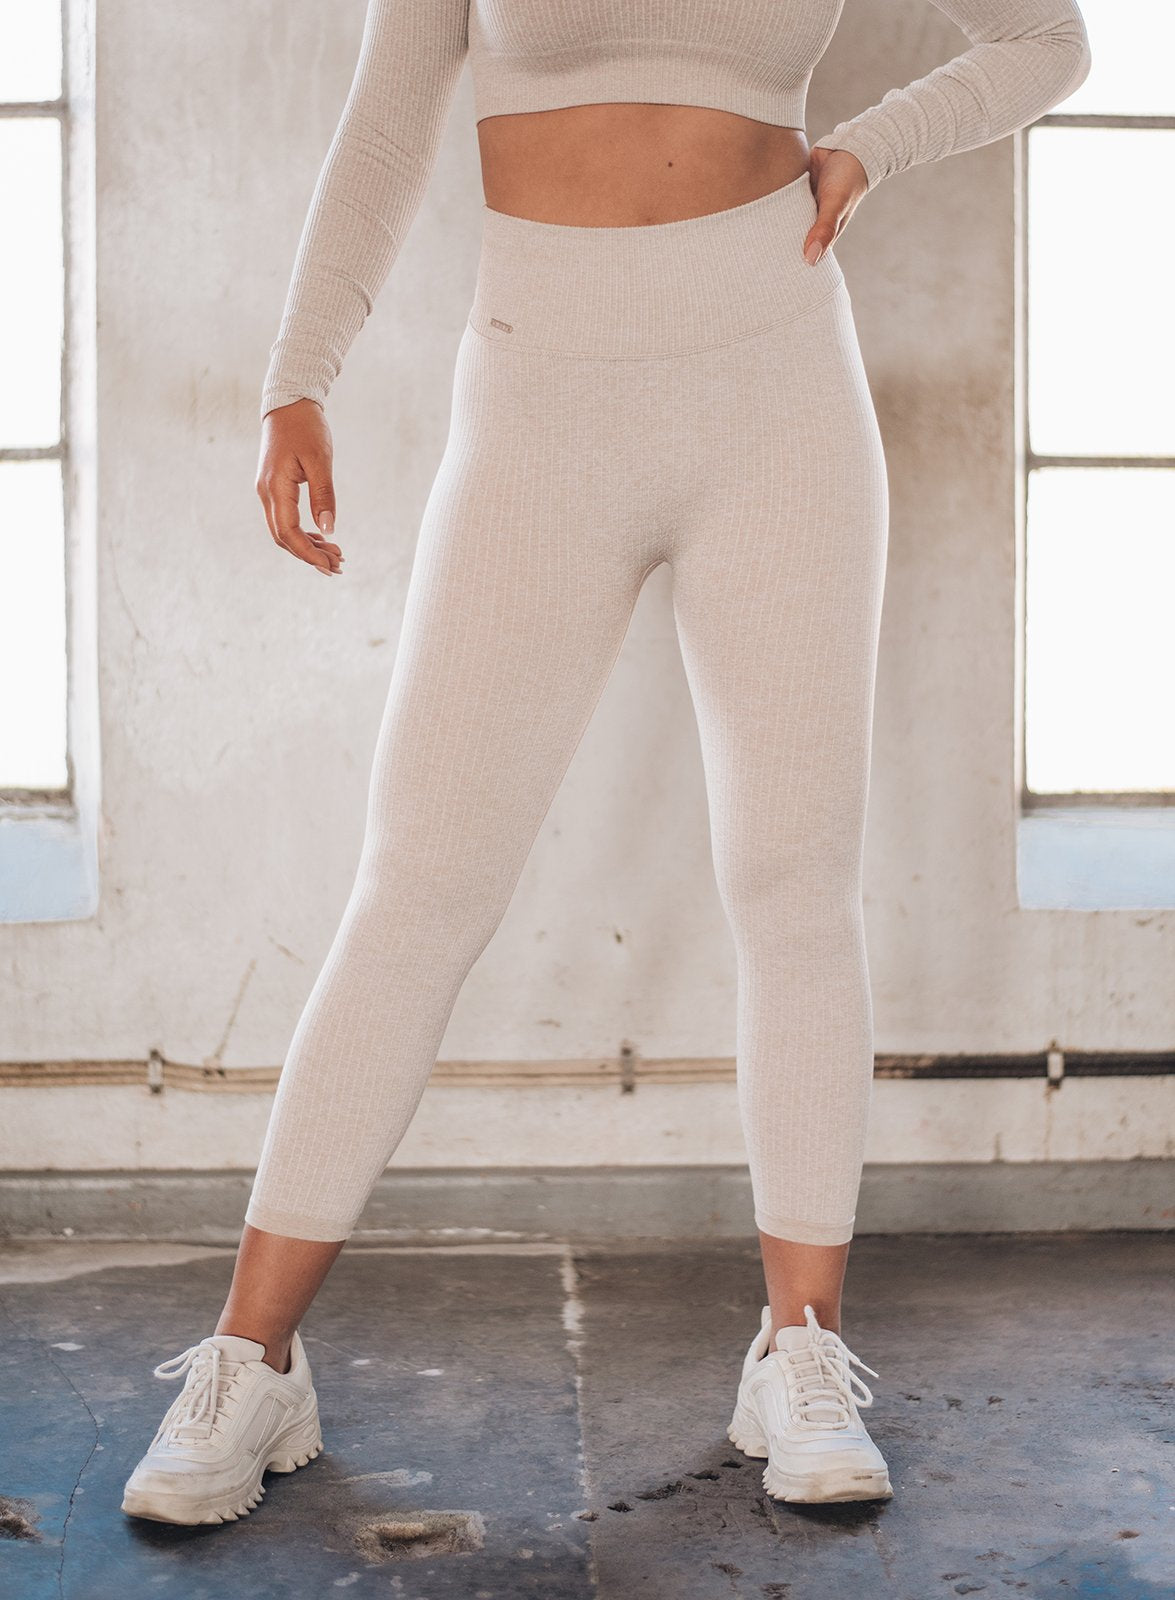 Aim'n Ribbed Seamless Tights | Shop AIM'N Sportswear at GOALS NZ